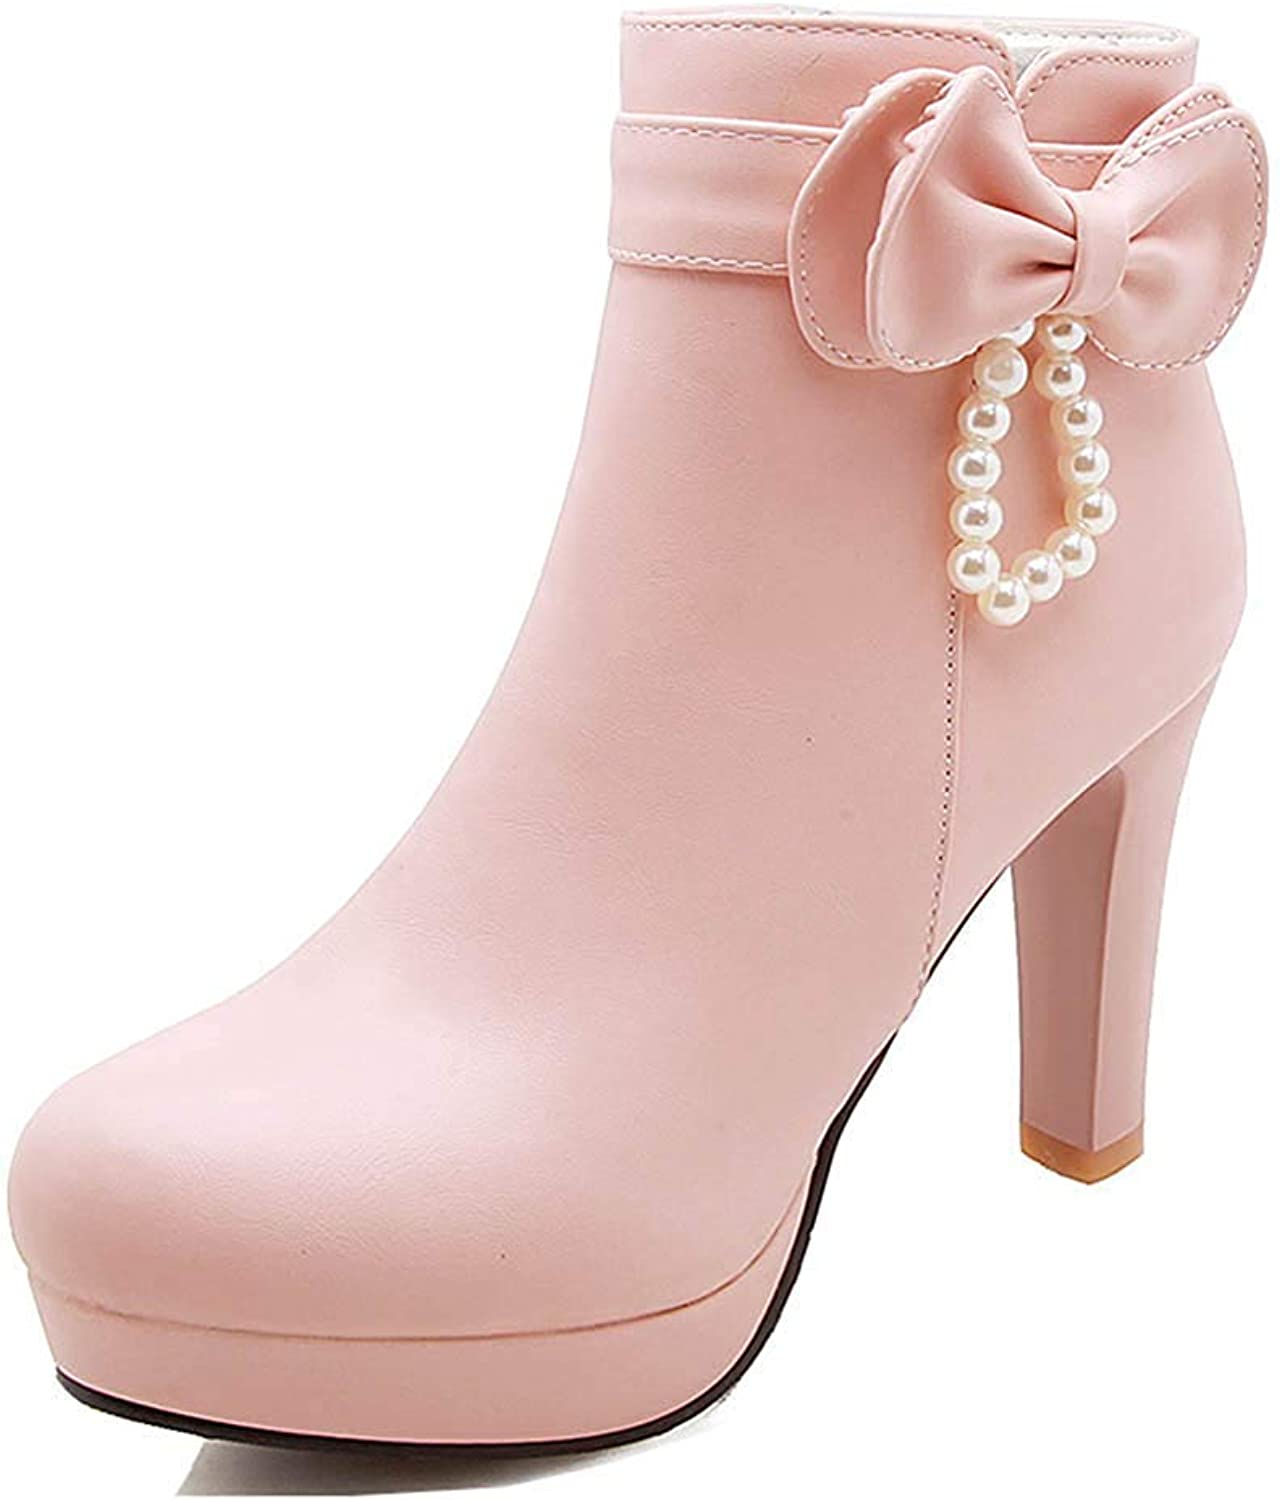 Unm Women's Cute Bead High Heeled Short Boots Round Toe Inside Zip Up Platform Ankle Booties with Bow